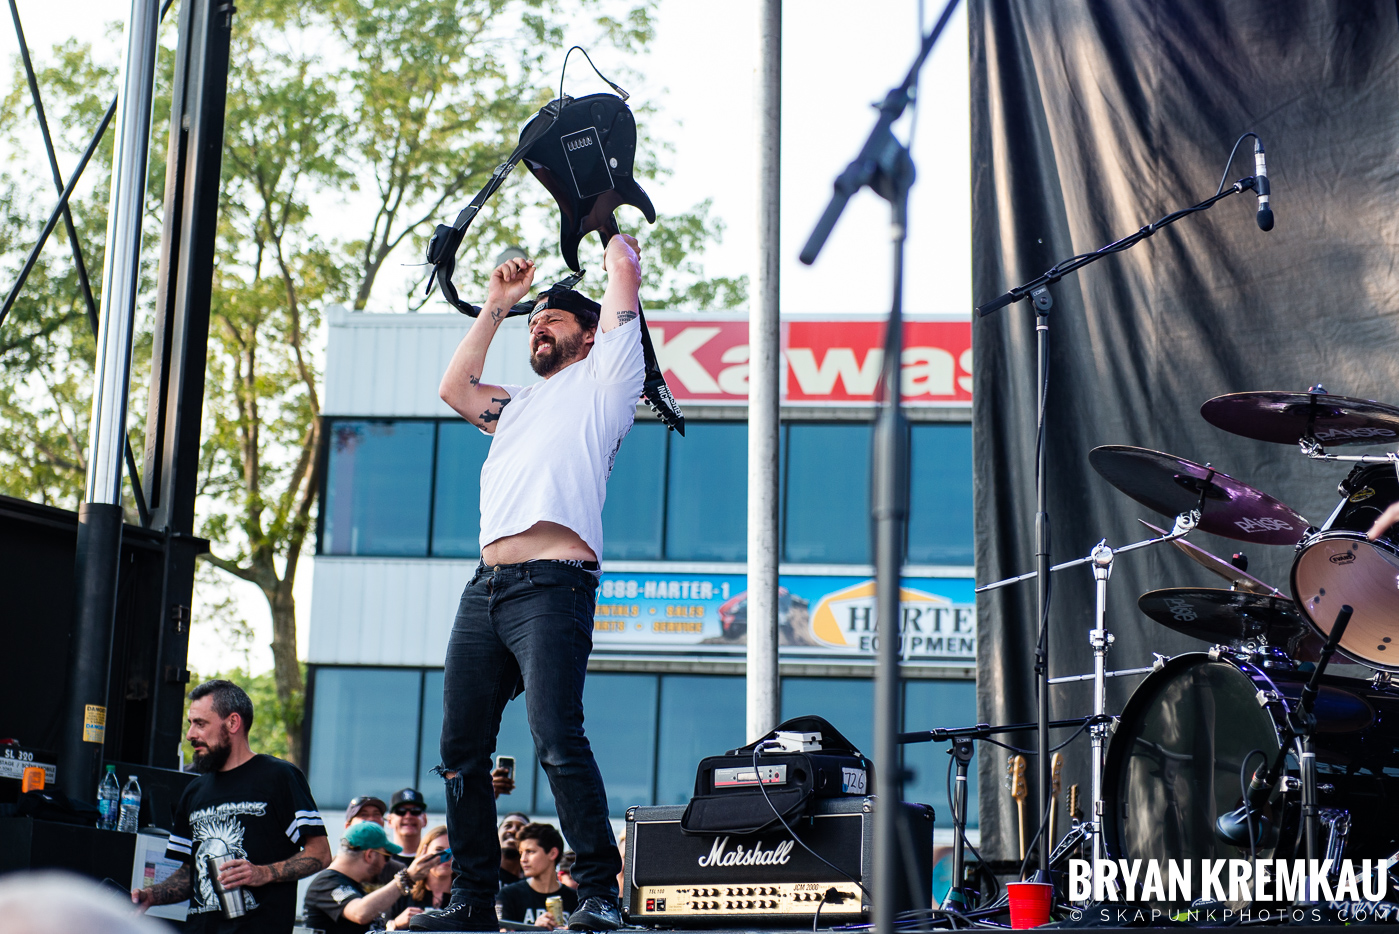 Suicidal Tendencies @ The Bash Music & Craft Beer Festival, Old Bridge Township Raceway Park, Englishtown, NJ - 6.2.19 (48)